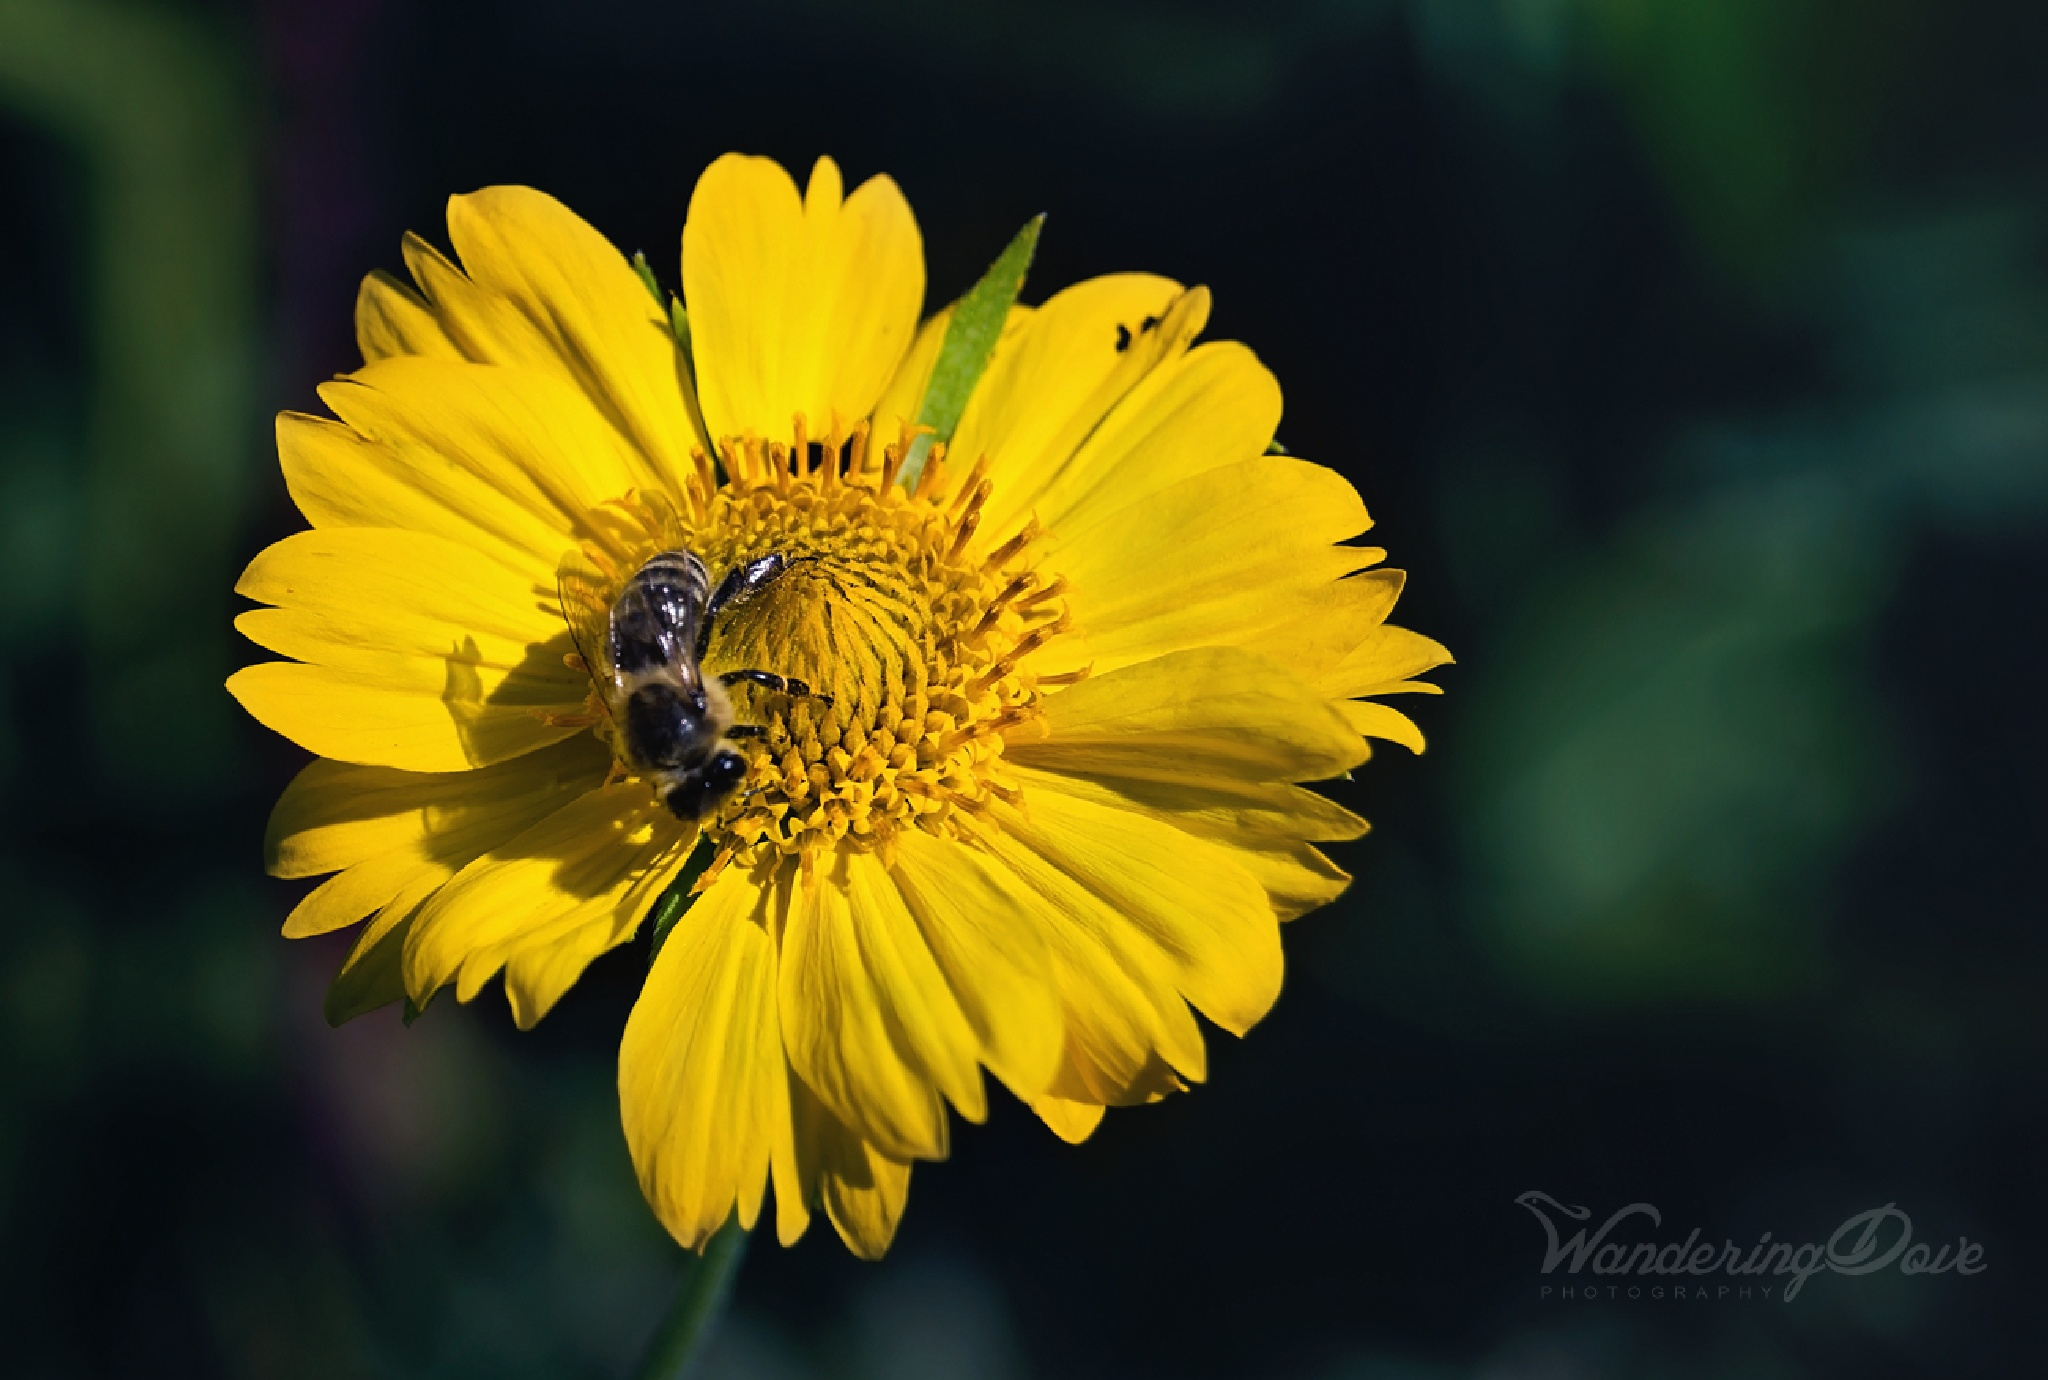 Bee on camomile by Wandering Dove Photography